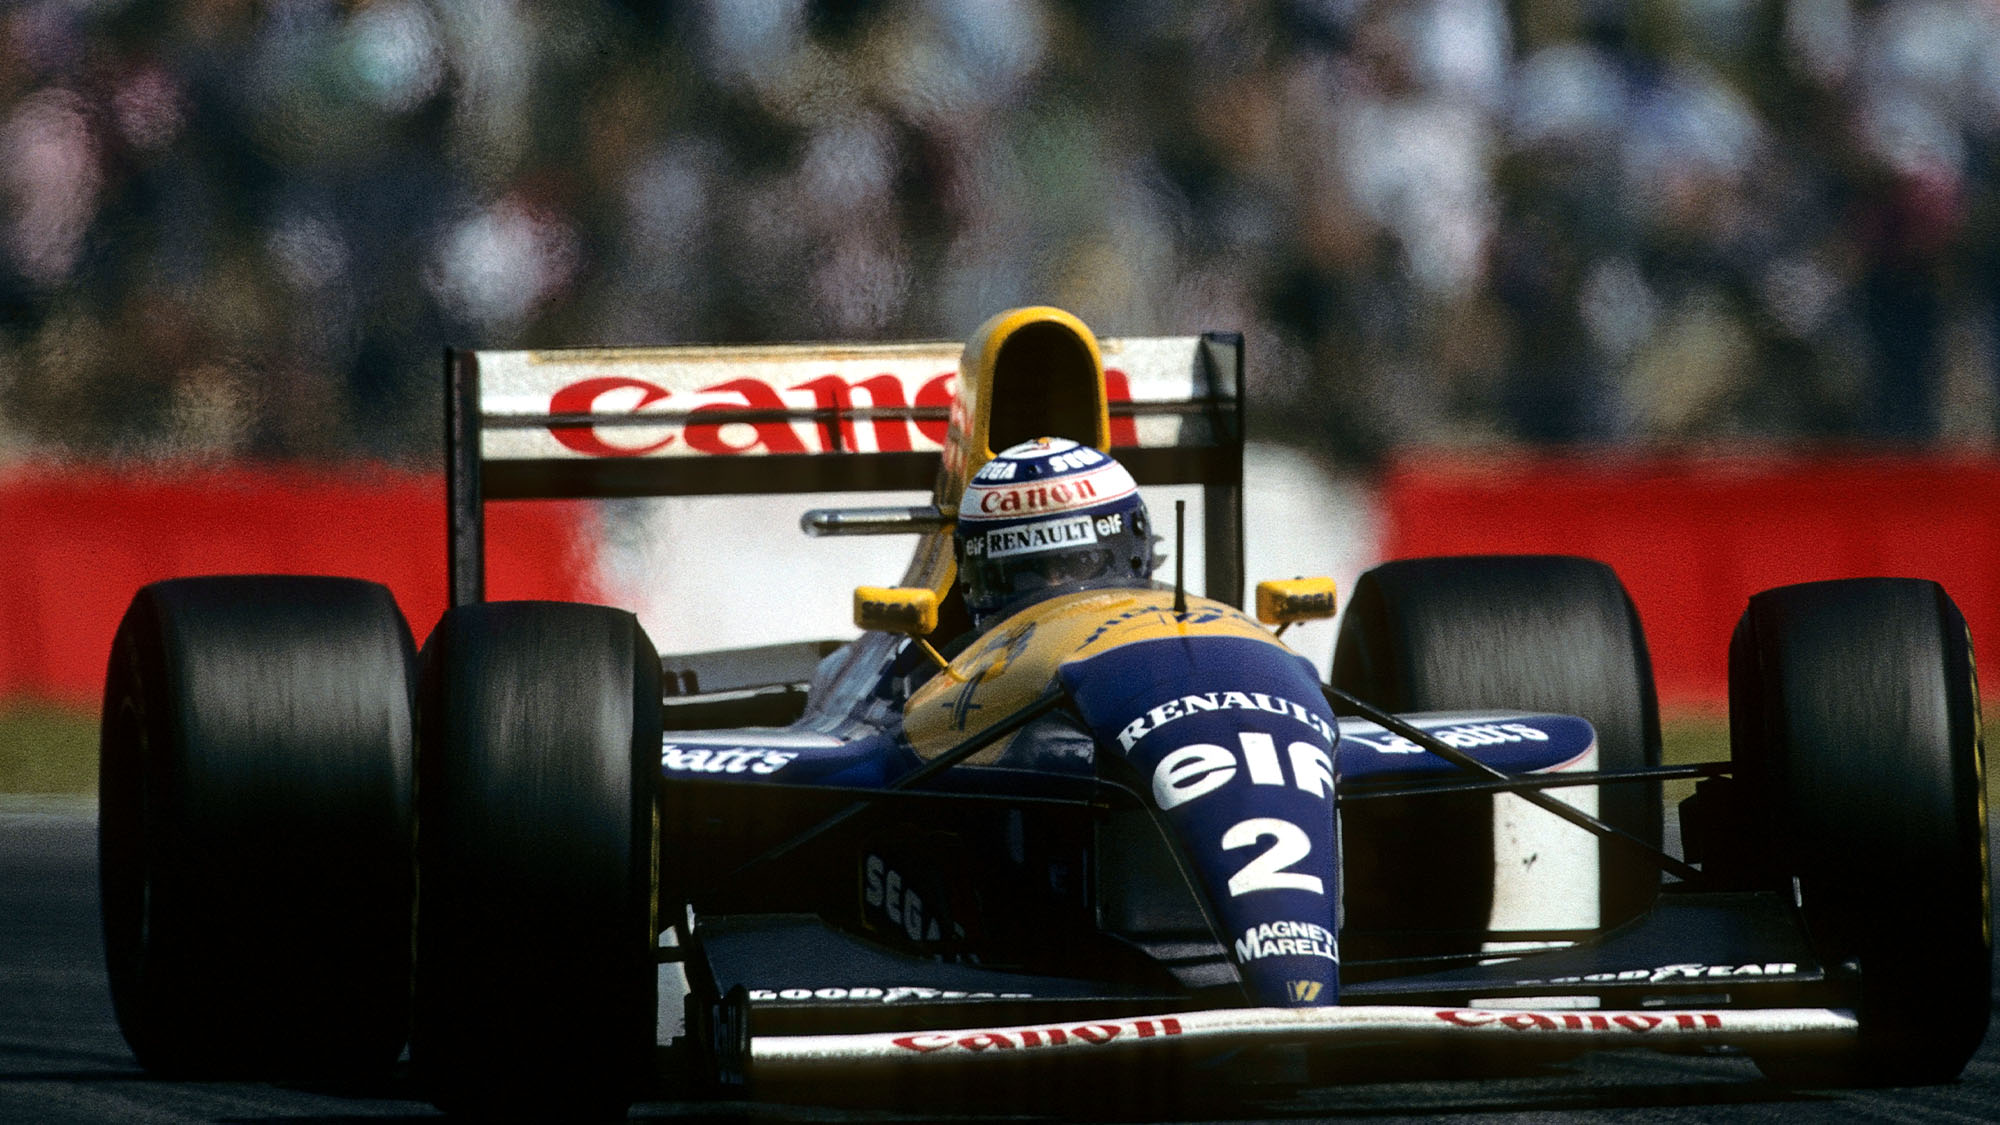 Alain Prost, Williams-Renault FW15C, Grand Prix of France, Circuit de Nevers Magny-Cours, July 4, 1993. (Photo by Paul-Henri Cahier/Getty Images)